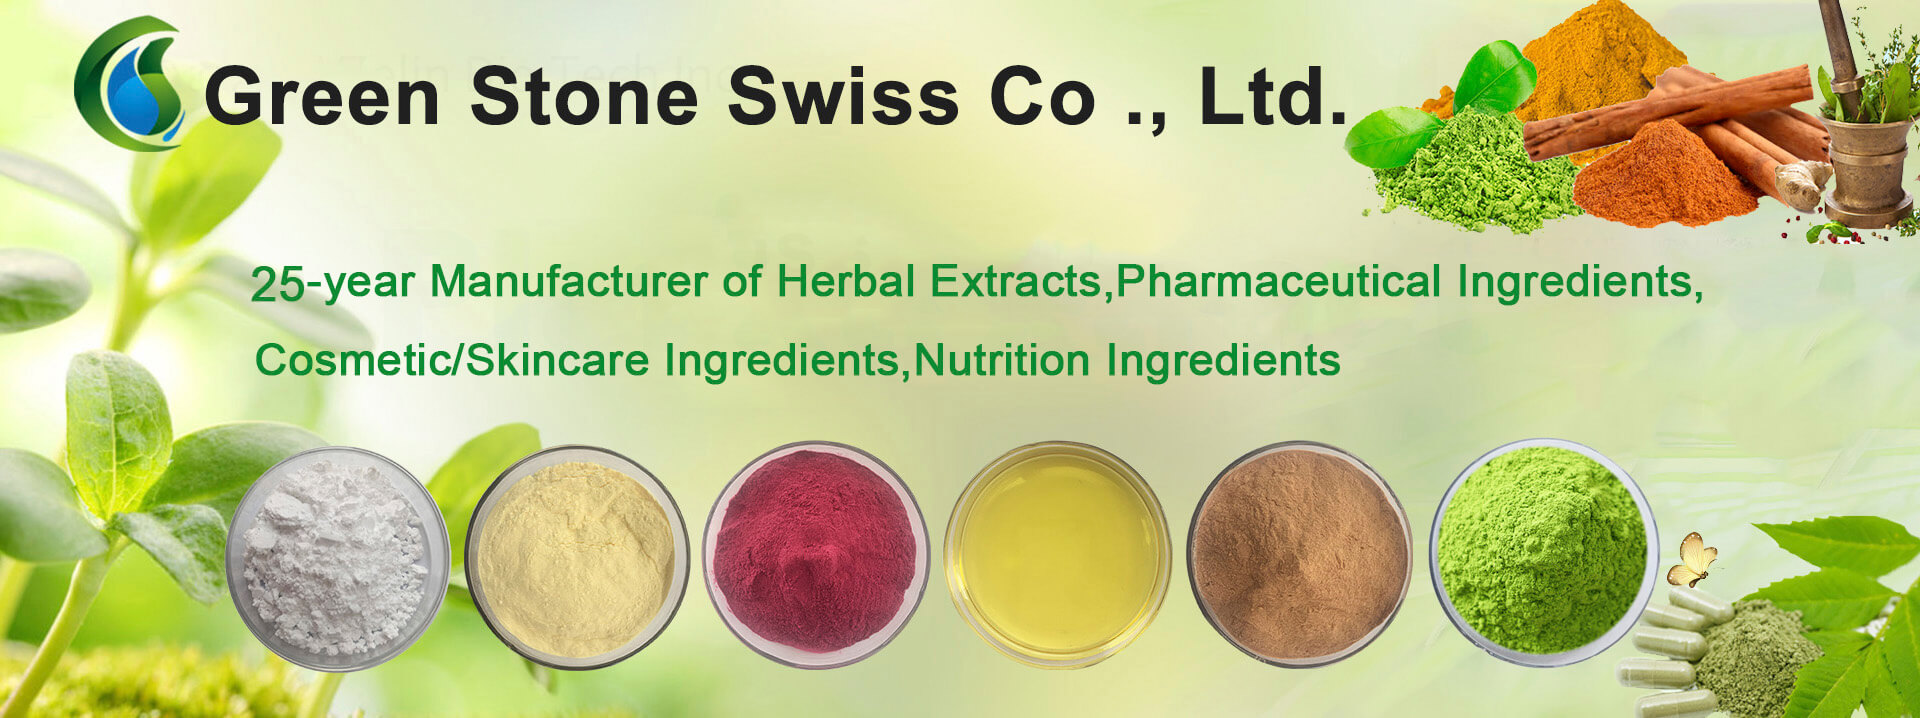 25-year Manufacturer of Herbal Extracts,Pharmaceutical Ingredients, Cosmetic/Skincare Ingredients,Nutrition Ingredients